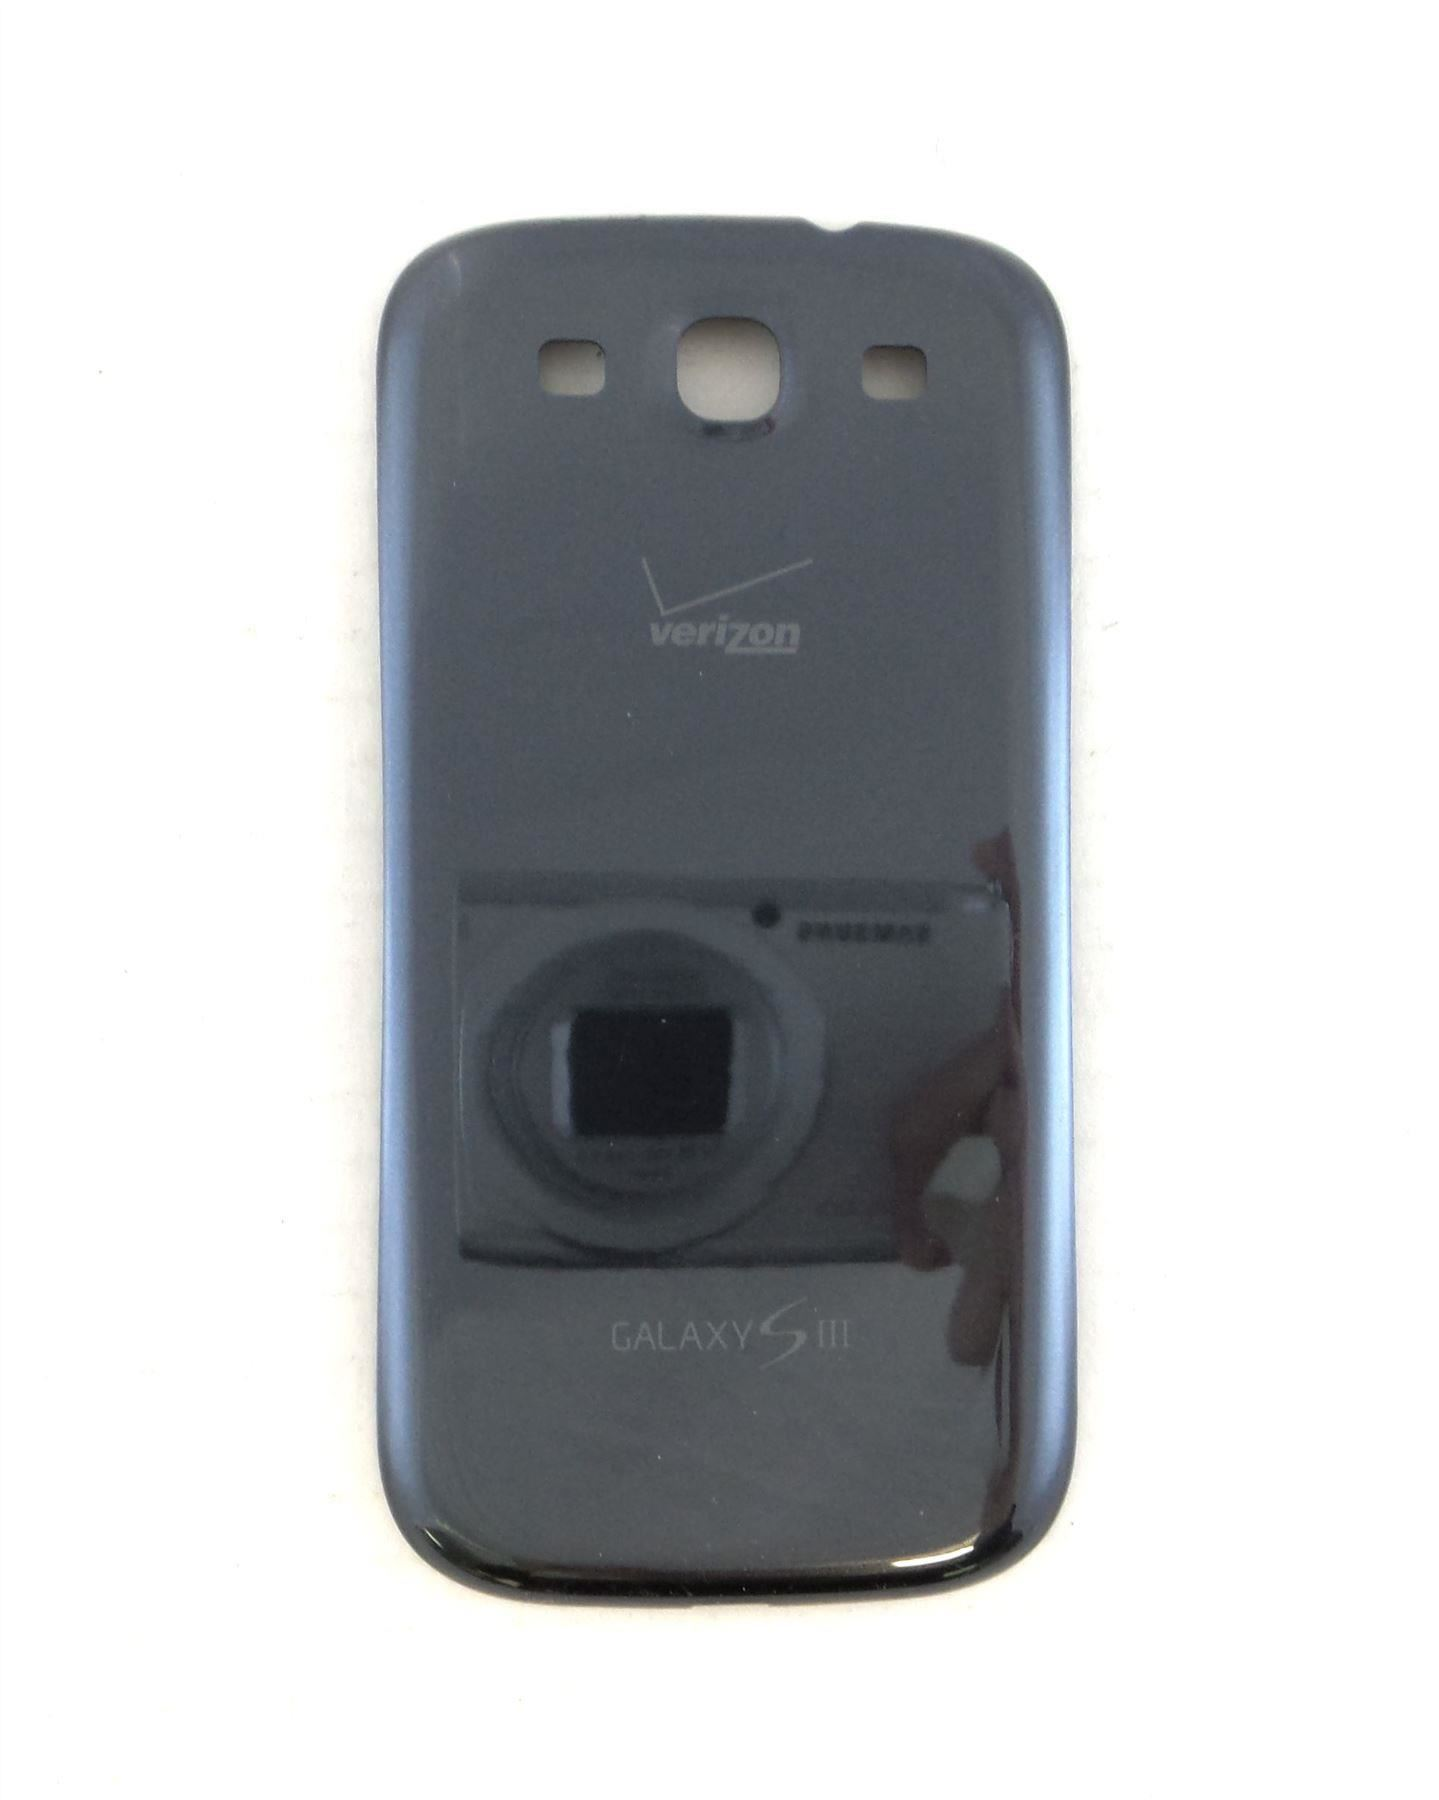 Samsung galaxy battery s3 verizon - Samsung Galaxy S3 Genuine Battery Door Cover Replacement